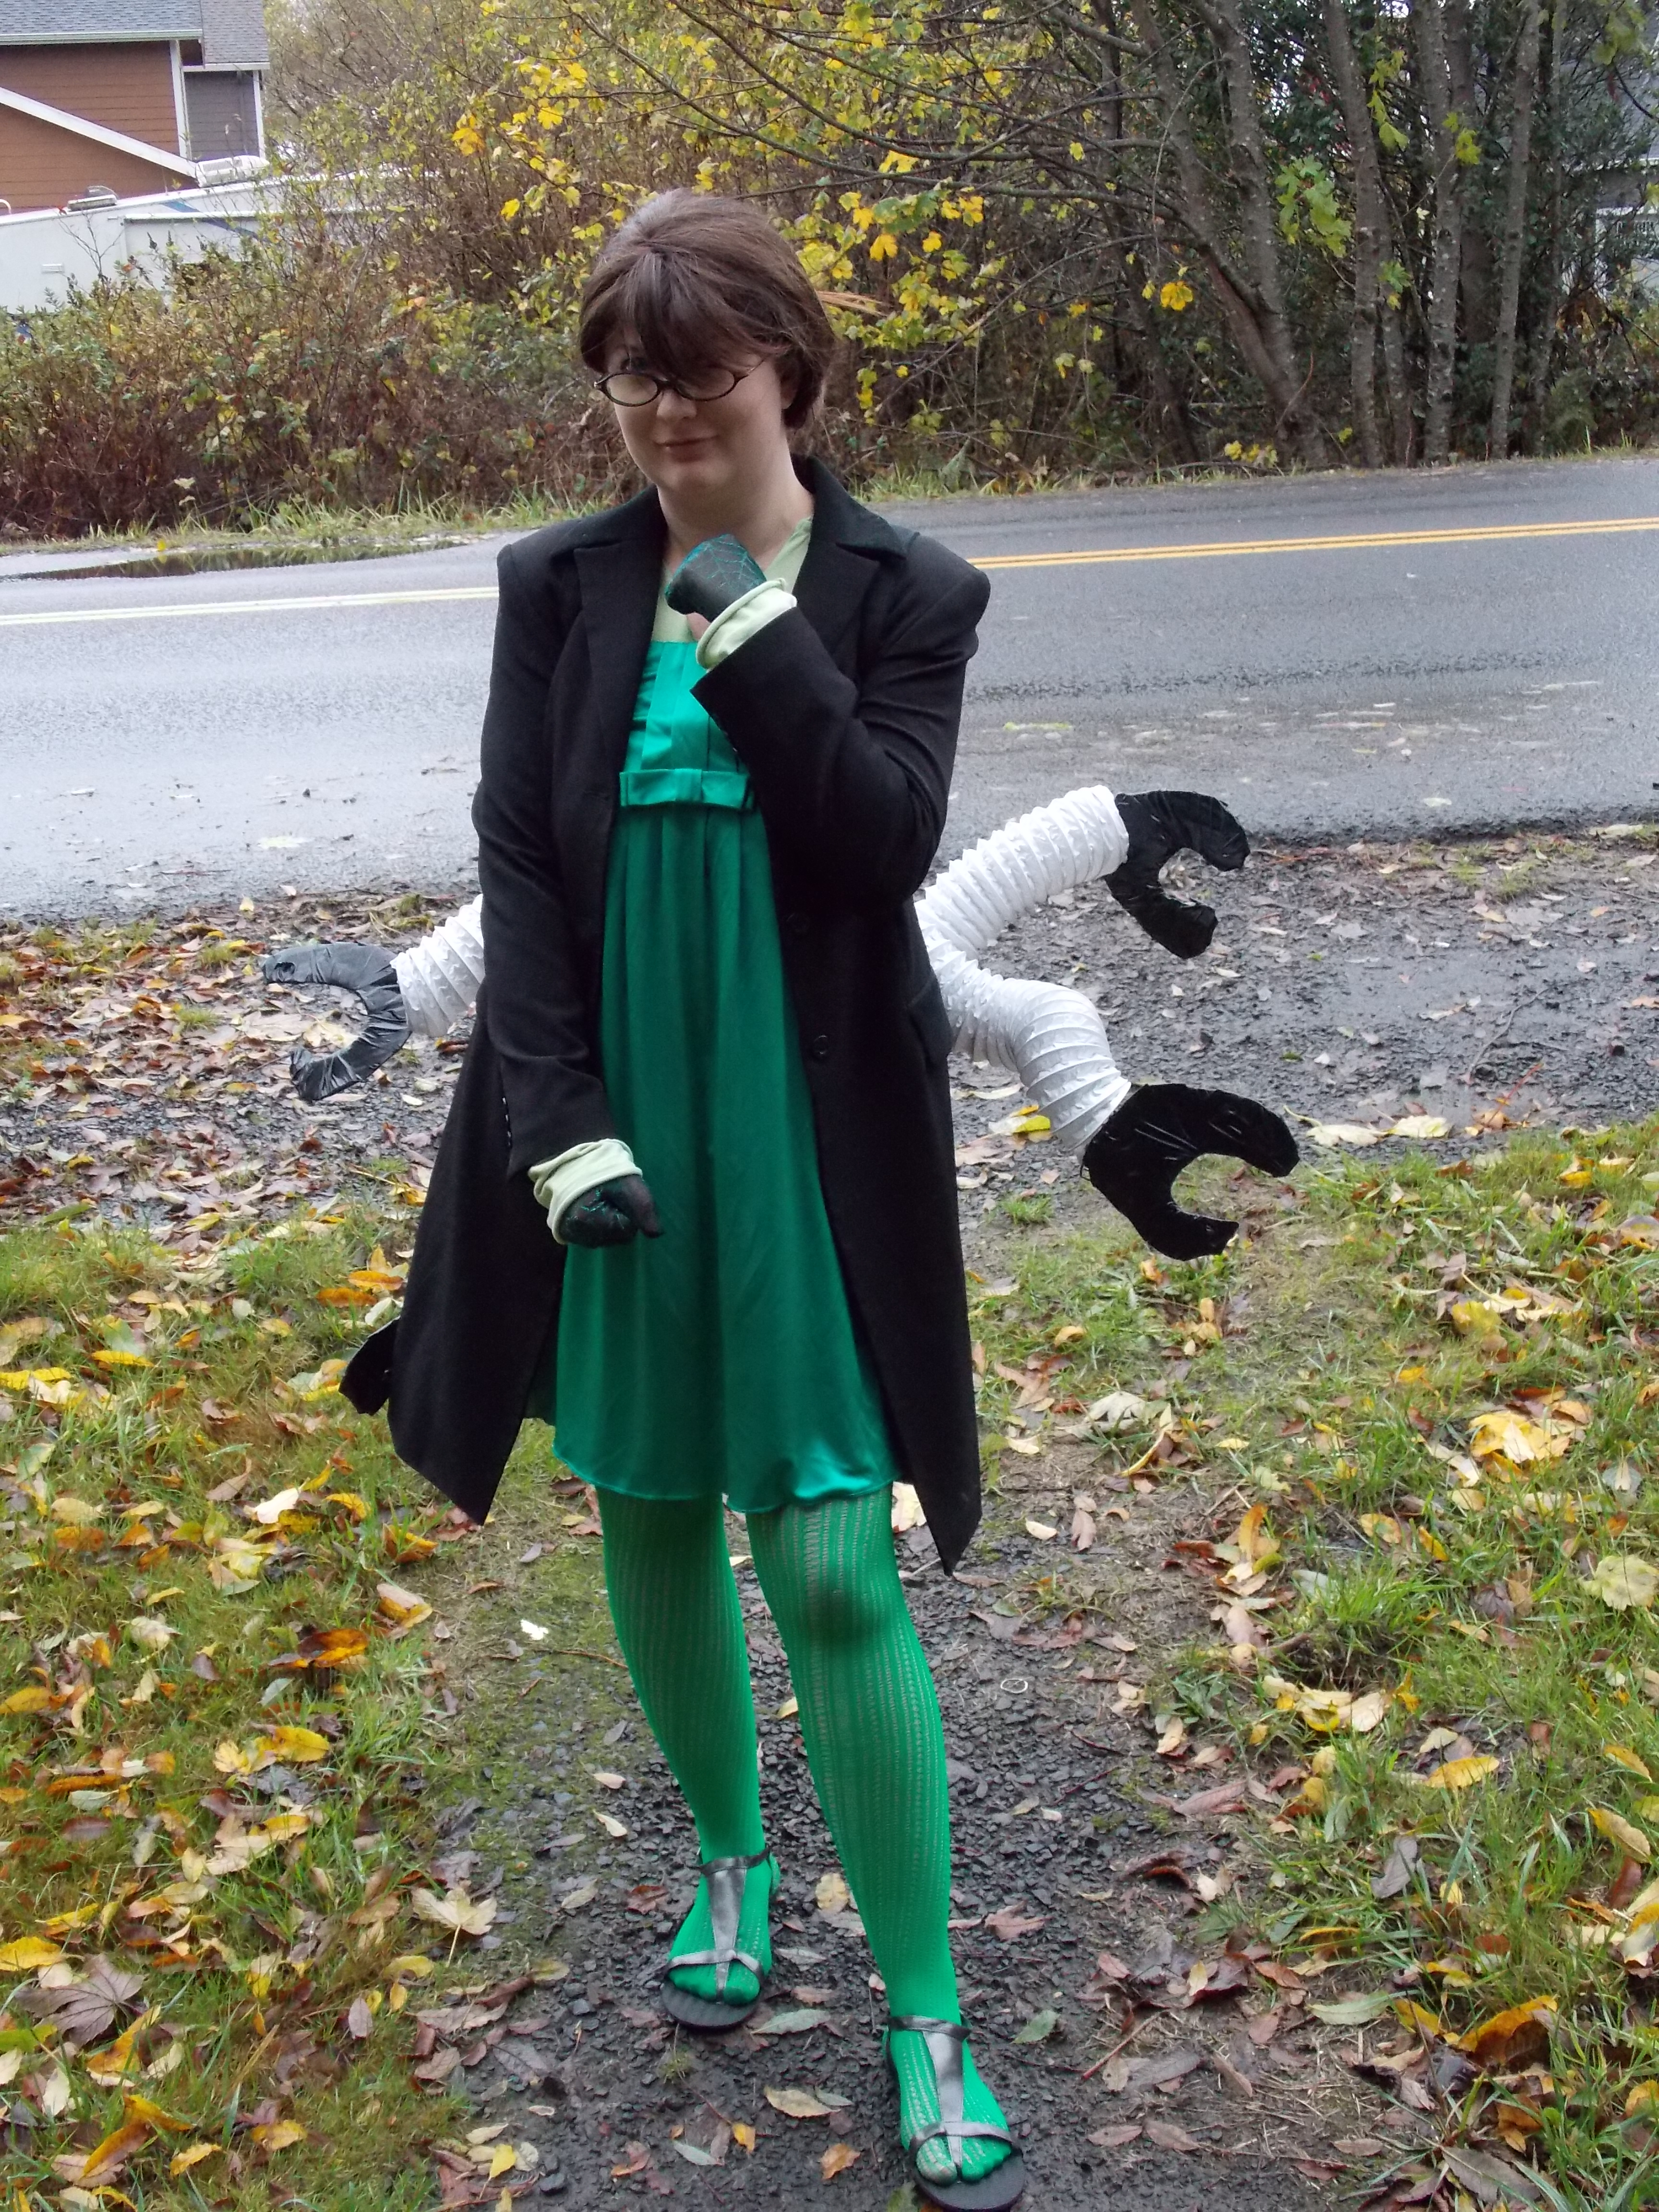 Dr. Octopus Costume & How to Make Your Own Dr. Octopus Costume   Contest Corner: For a ...